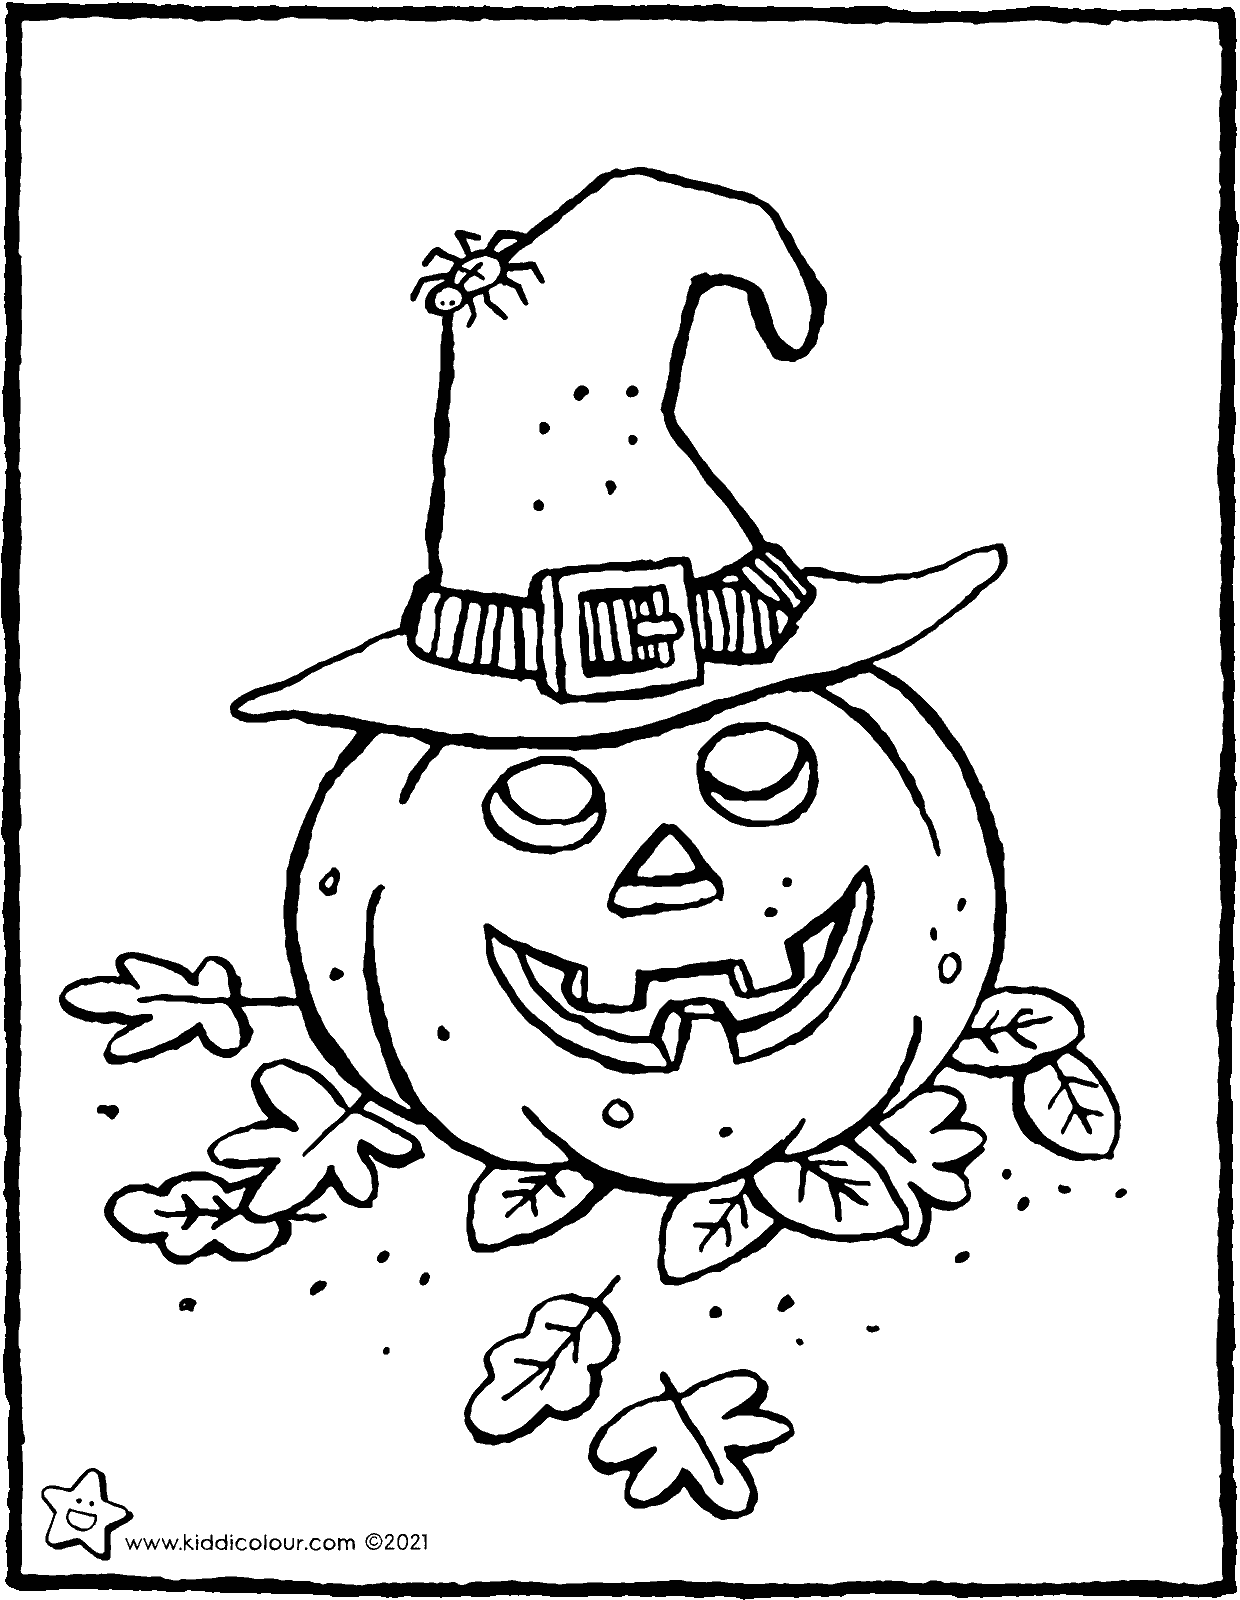 pumpkin with witch's hat coloring page - drawing - colouring picture 01V